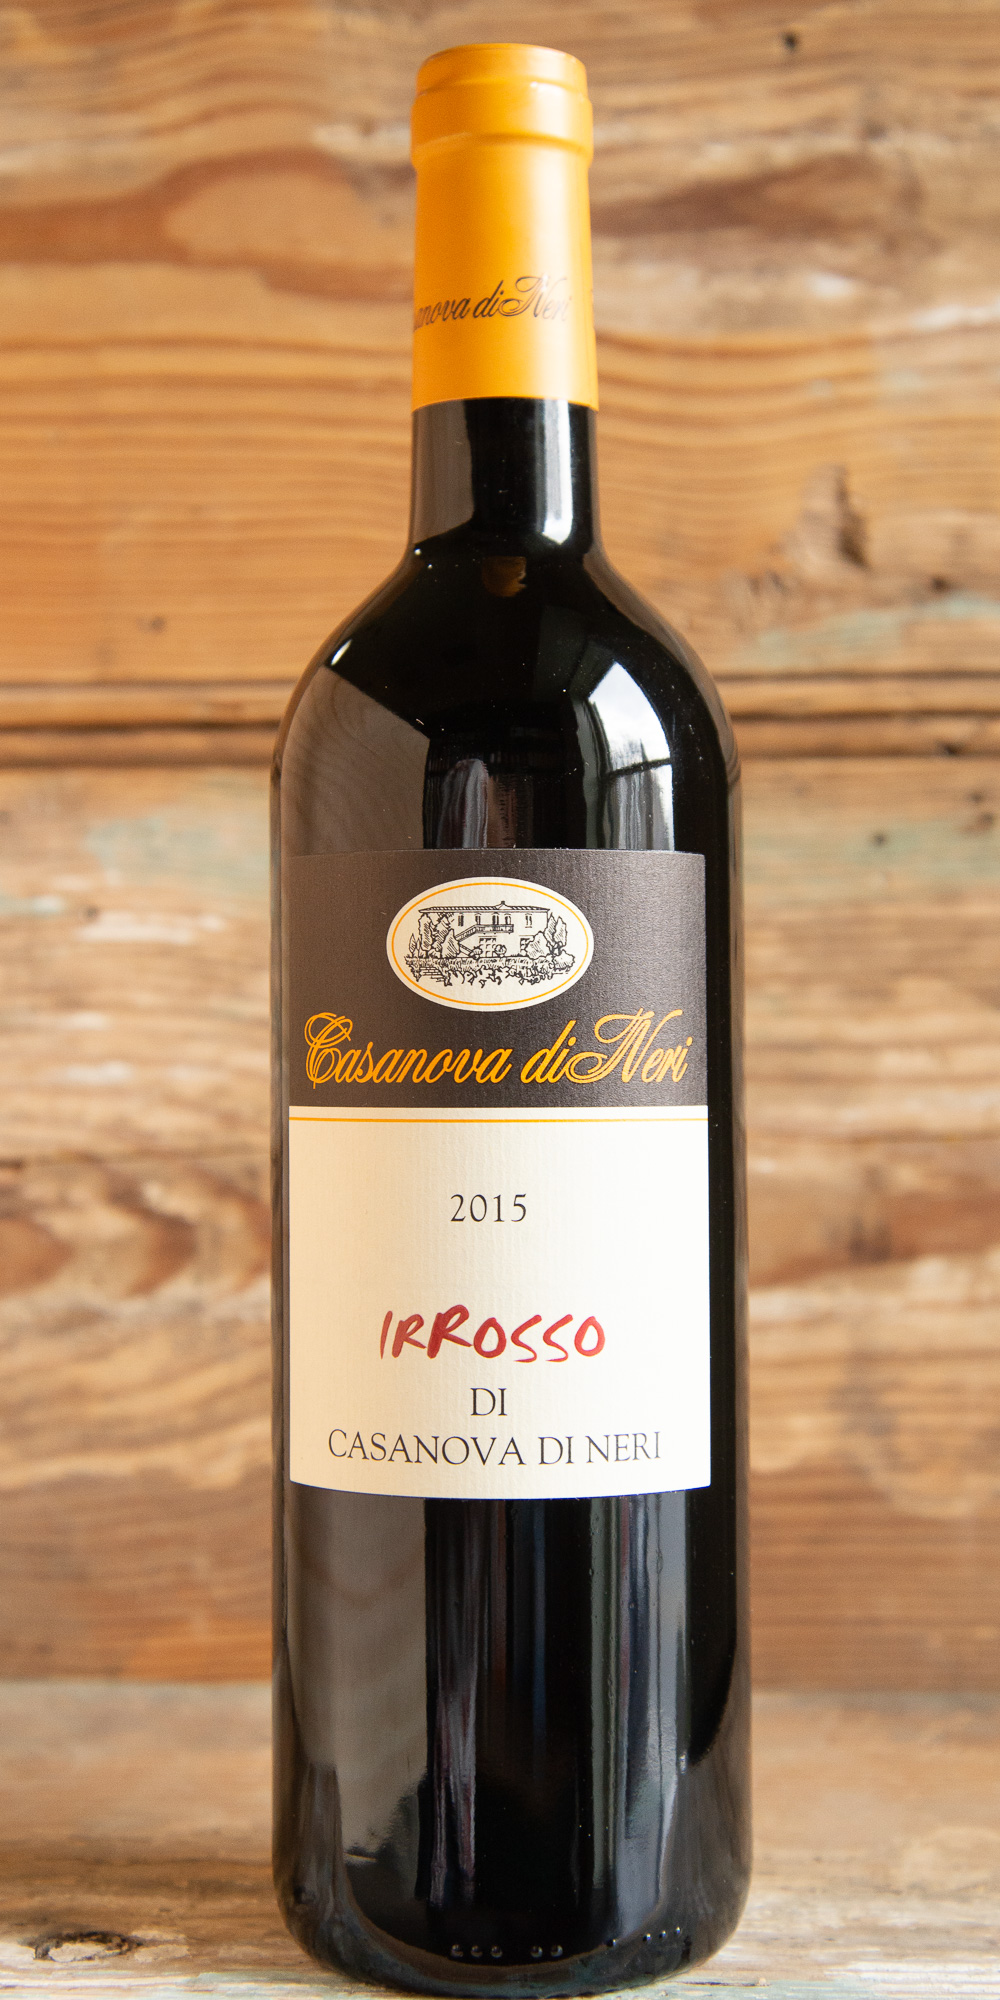 """Casanova di Neri Irrosso Toscana 2015 - Origin: ItalyRetail: $23.95 